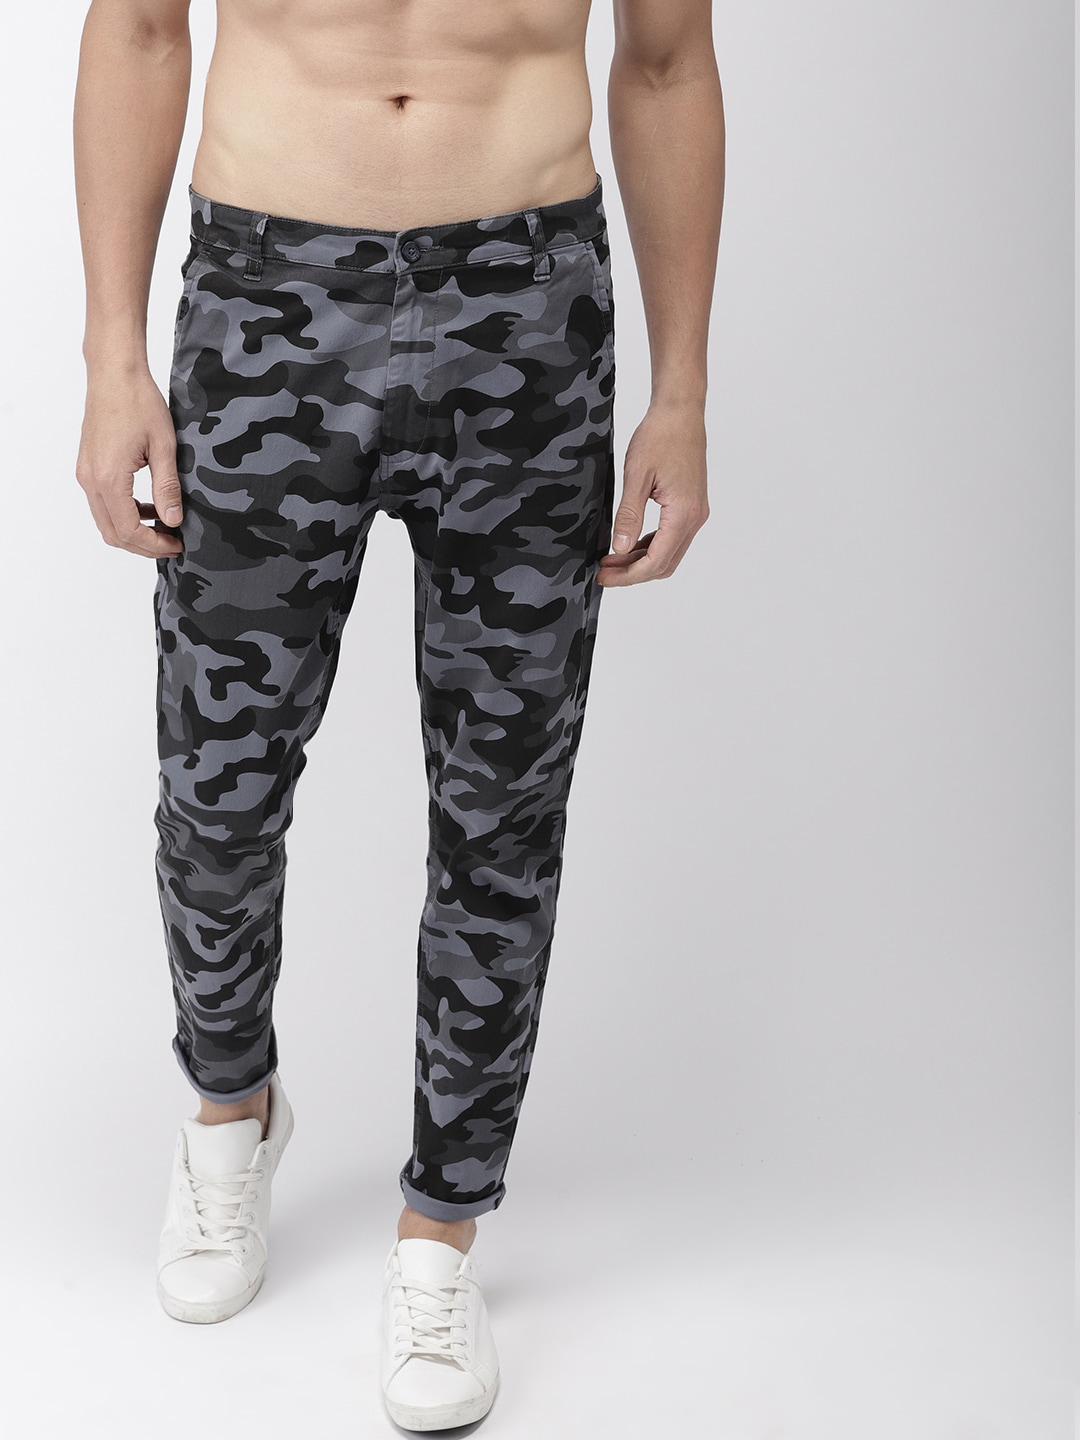 4a2ad81878c Camouflage Pants - Buy Camo Army Cargo Pants for Men   Women